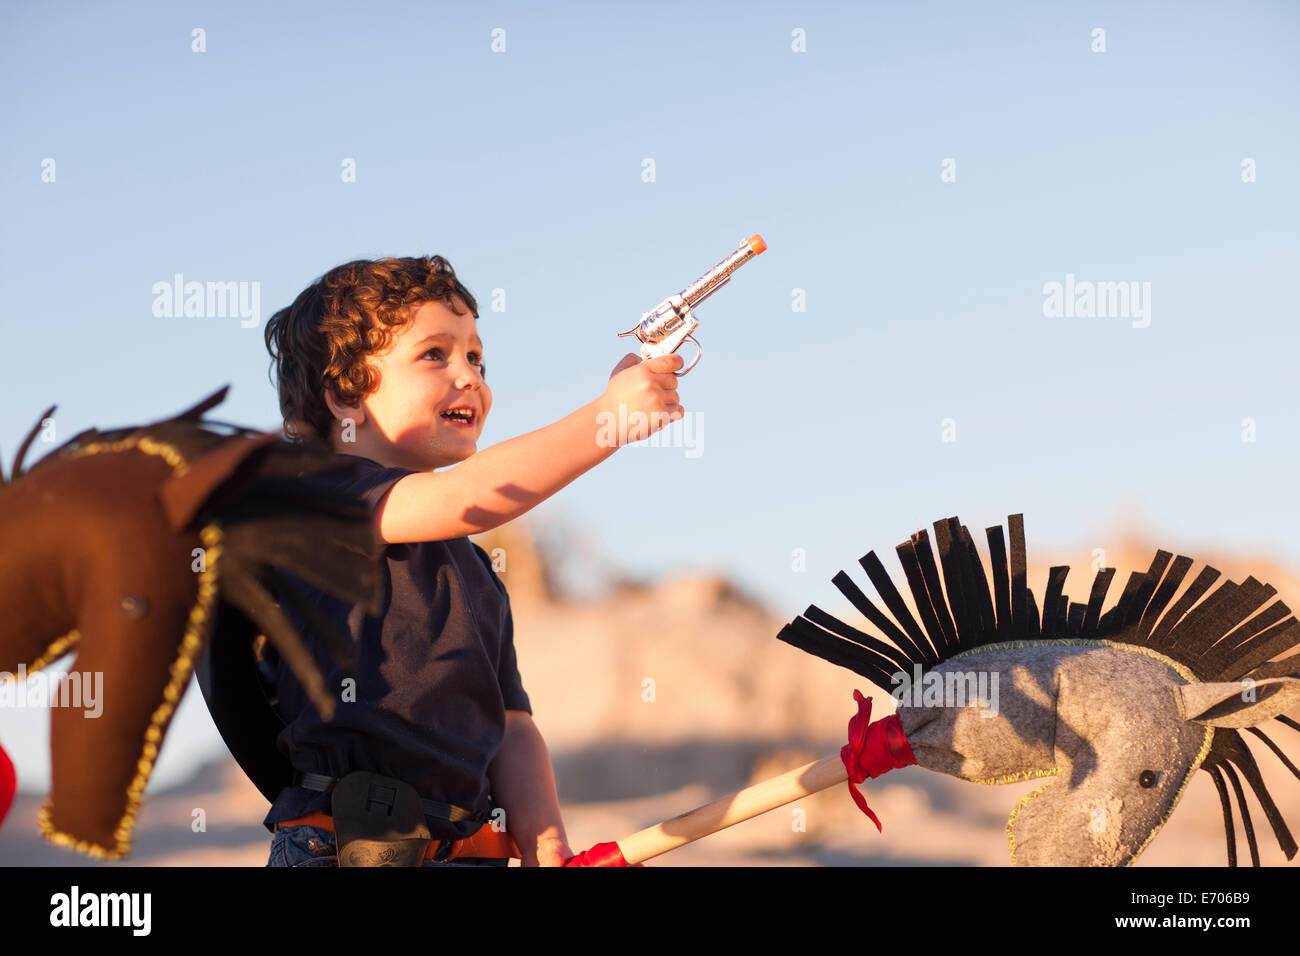 Boy dressed as cowboy with hobby horse and toy gun in sand dunes - Stock Image